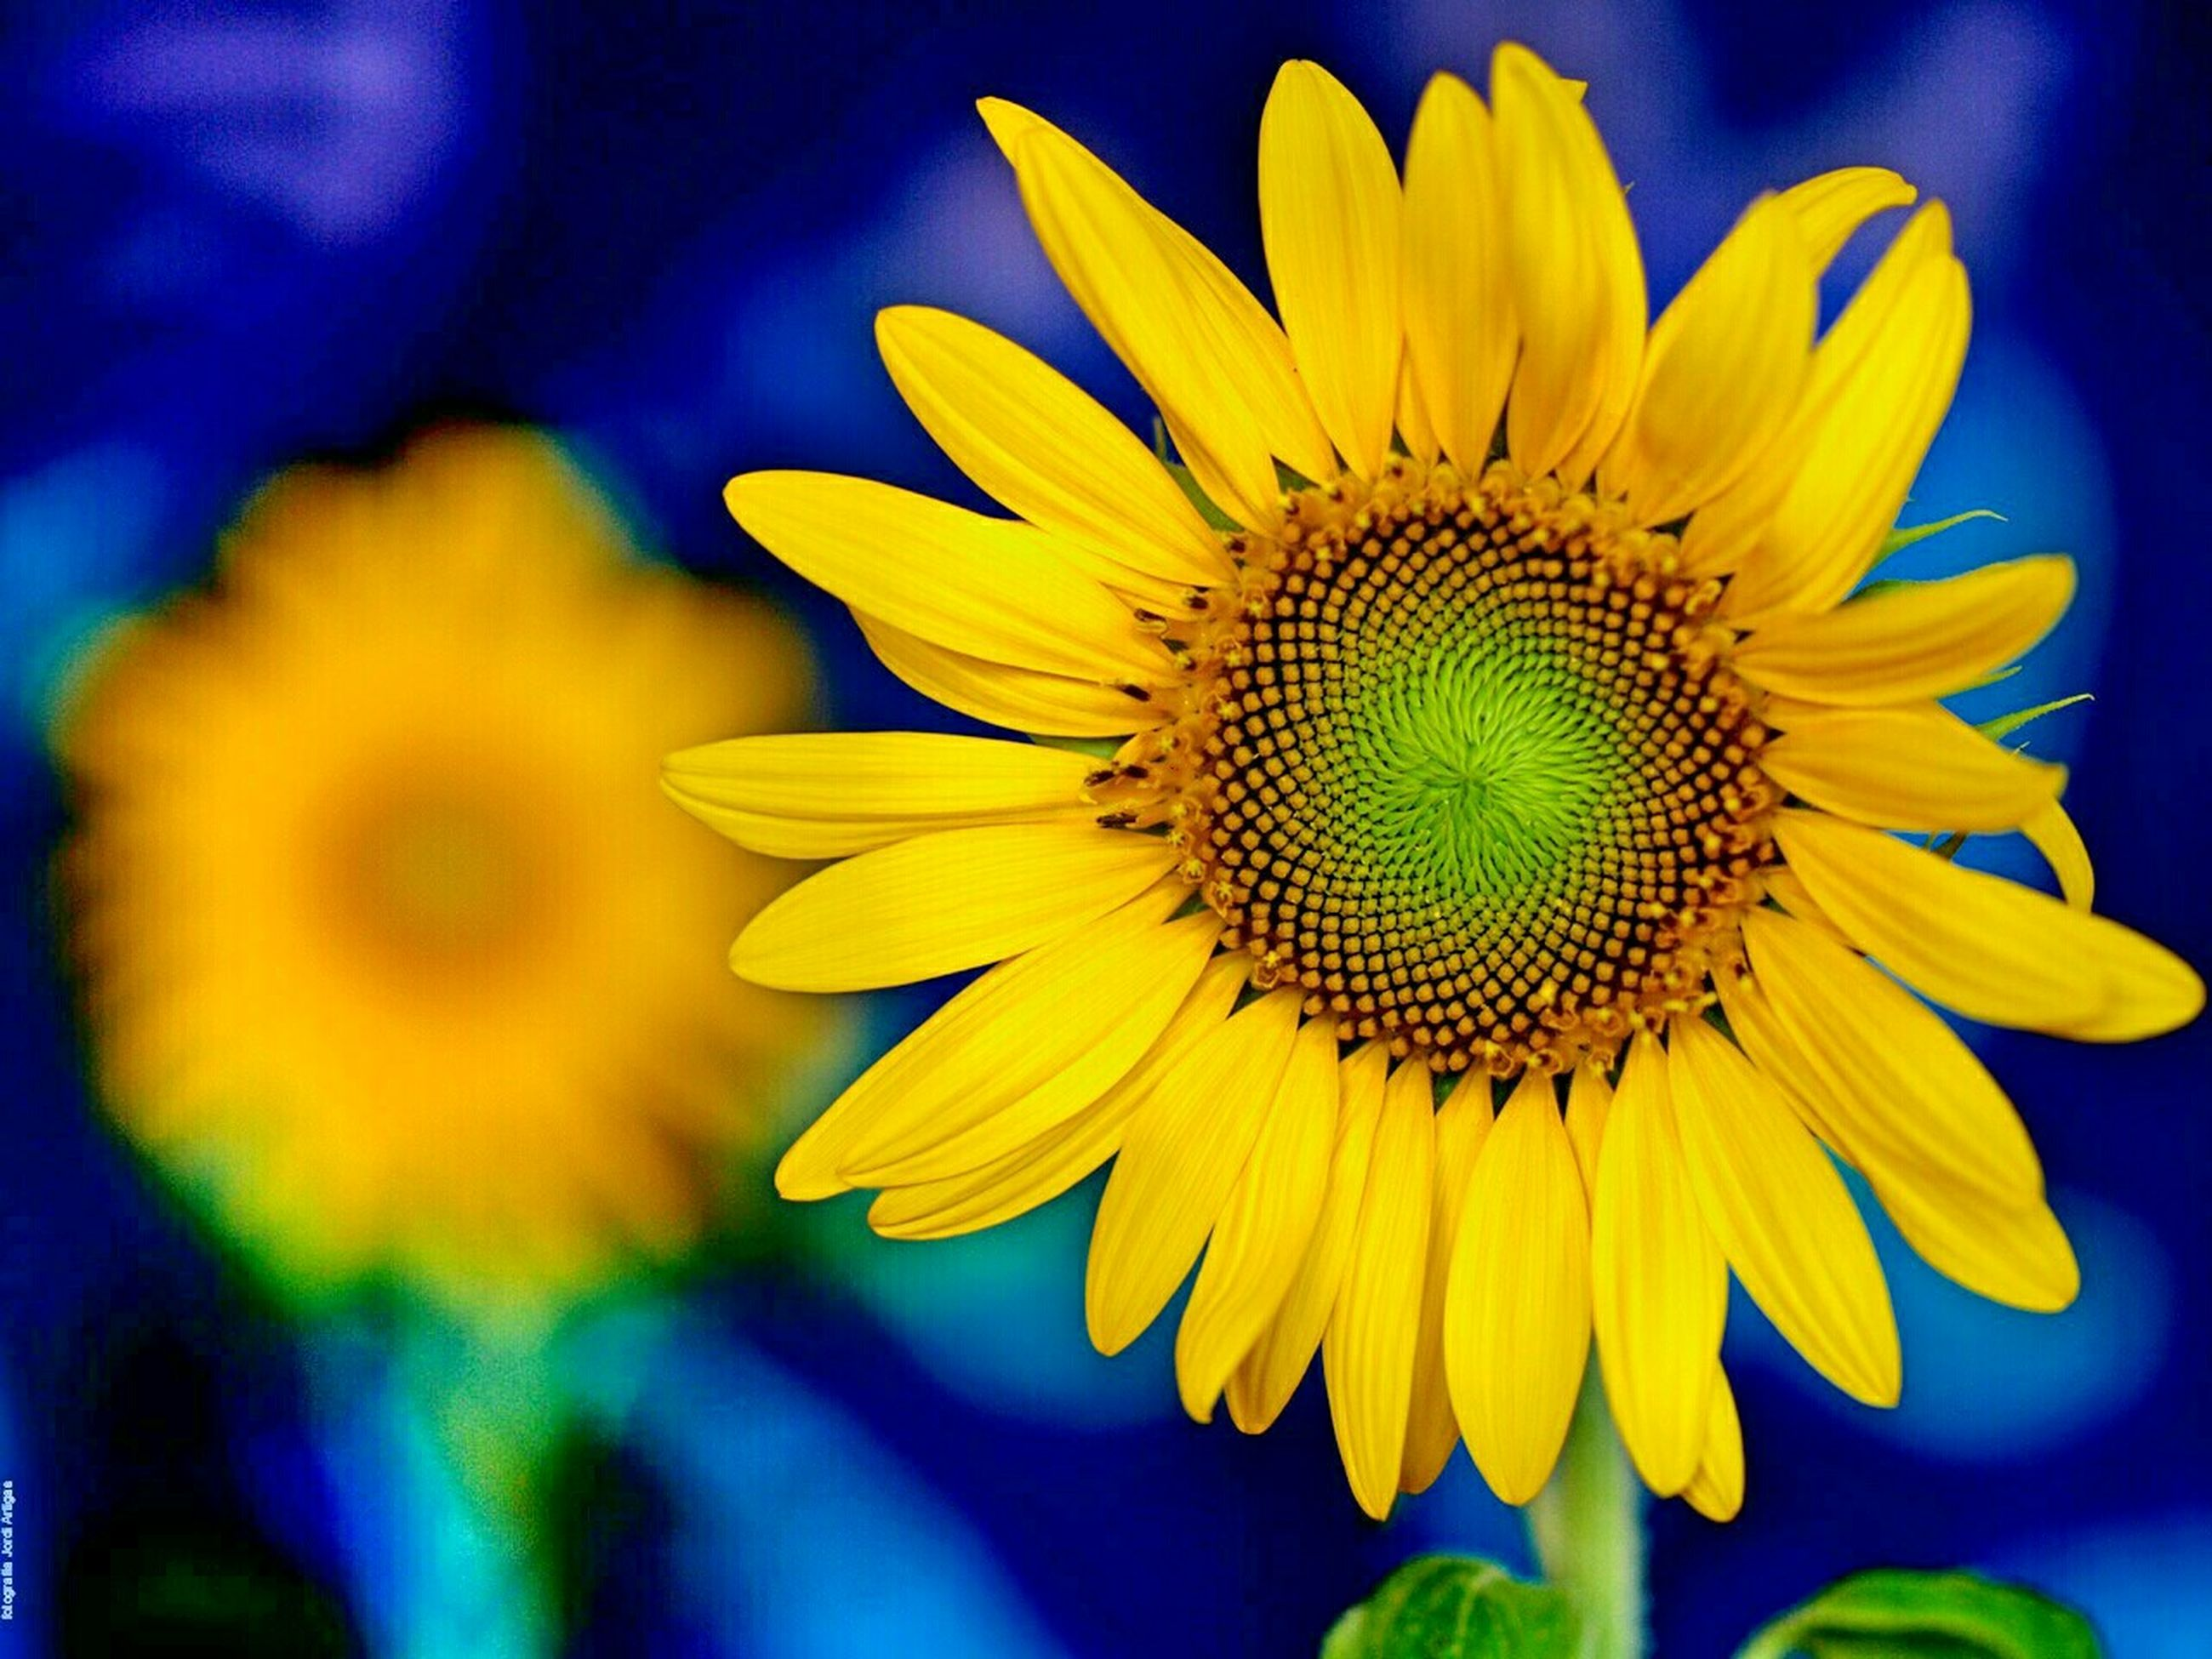 yellow, flower, freshness, growth, petal, fragility, close-up, flower head, beauty in nature, nature, focus on foreground, plant, blooming, sunflower, single flower, pollen, in bloom, selective focus, vibrant color, outdoors